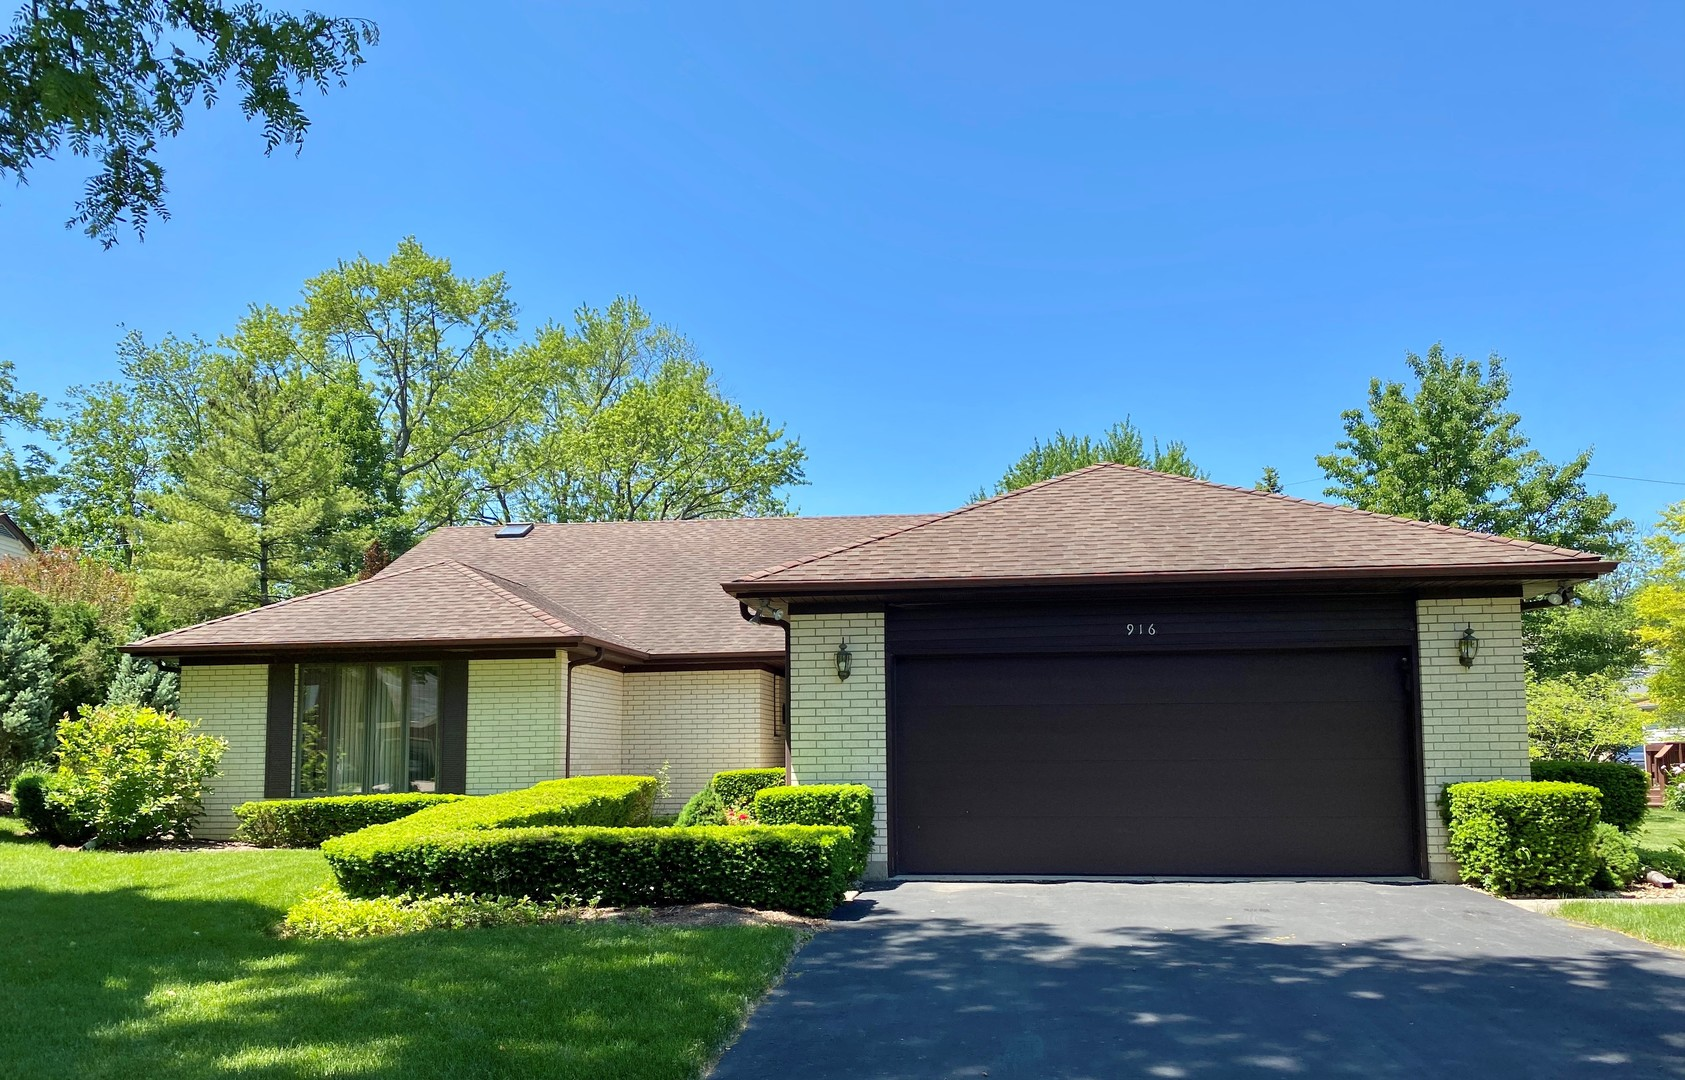 916 Burnham Court, Glenview in Cook County, IL 60025 Home for Sale